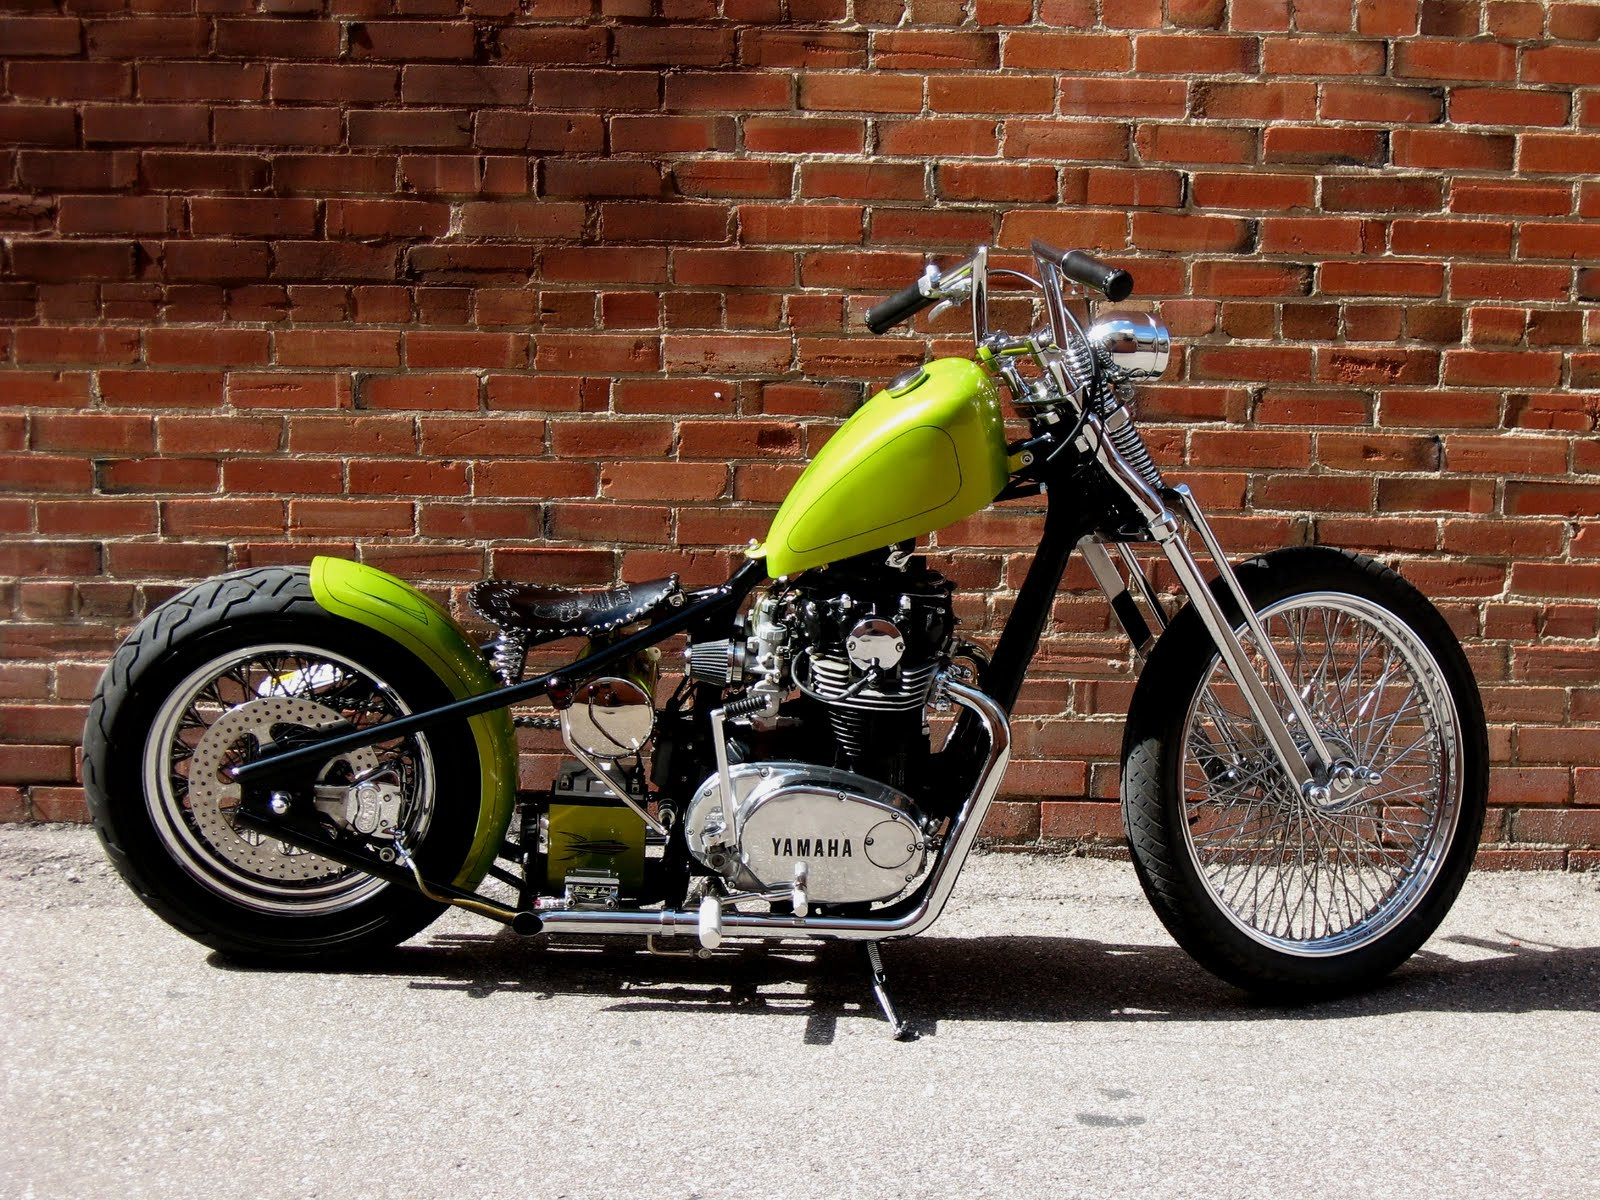 triumph bobbers lime green goodness yamaha xs650 bobber. Black Bedroom Furniture Sets. Home Design Ideas